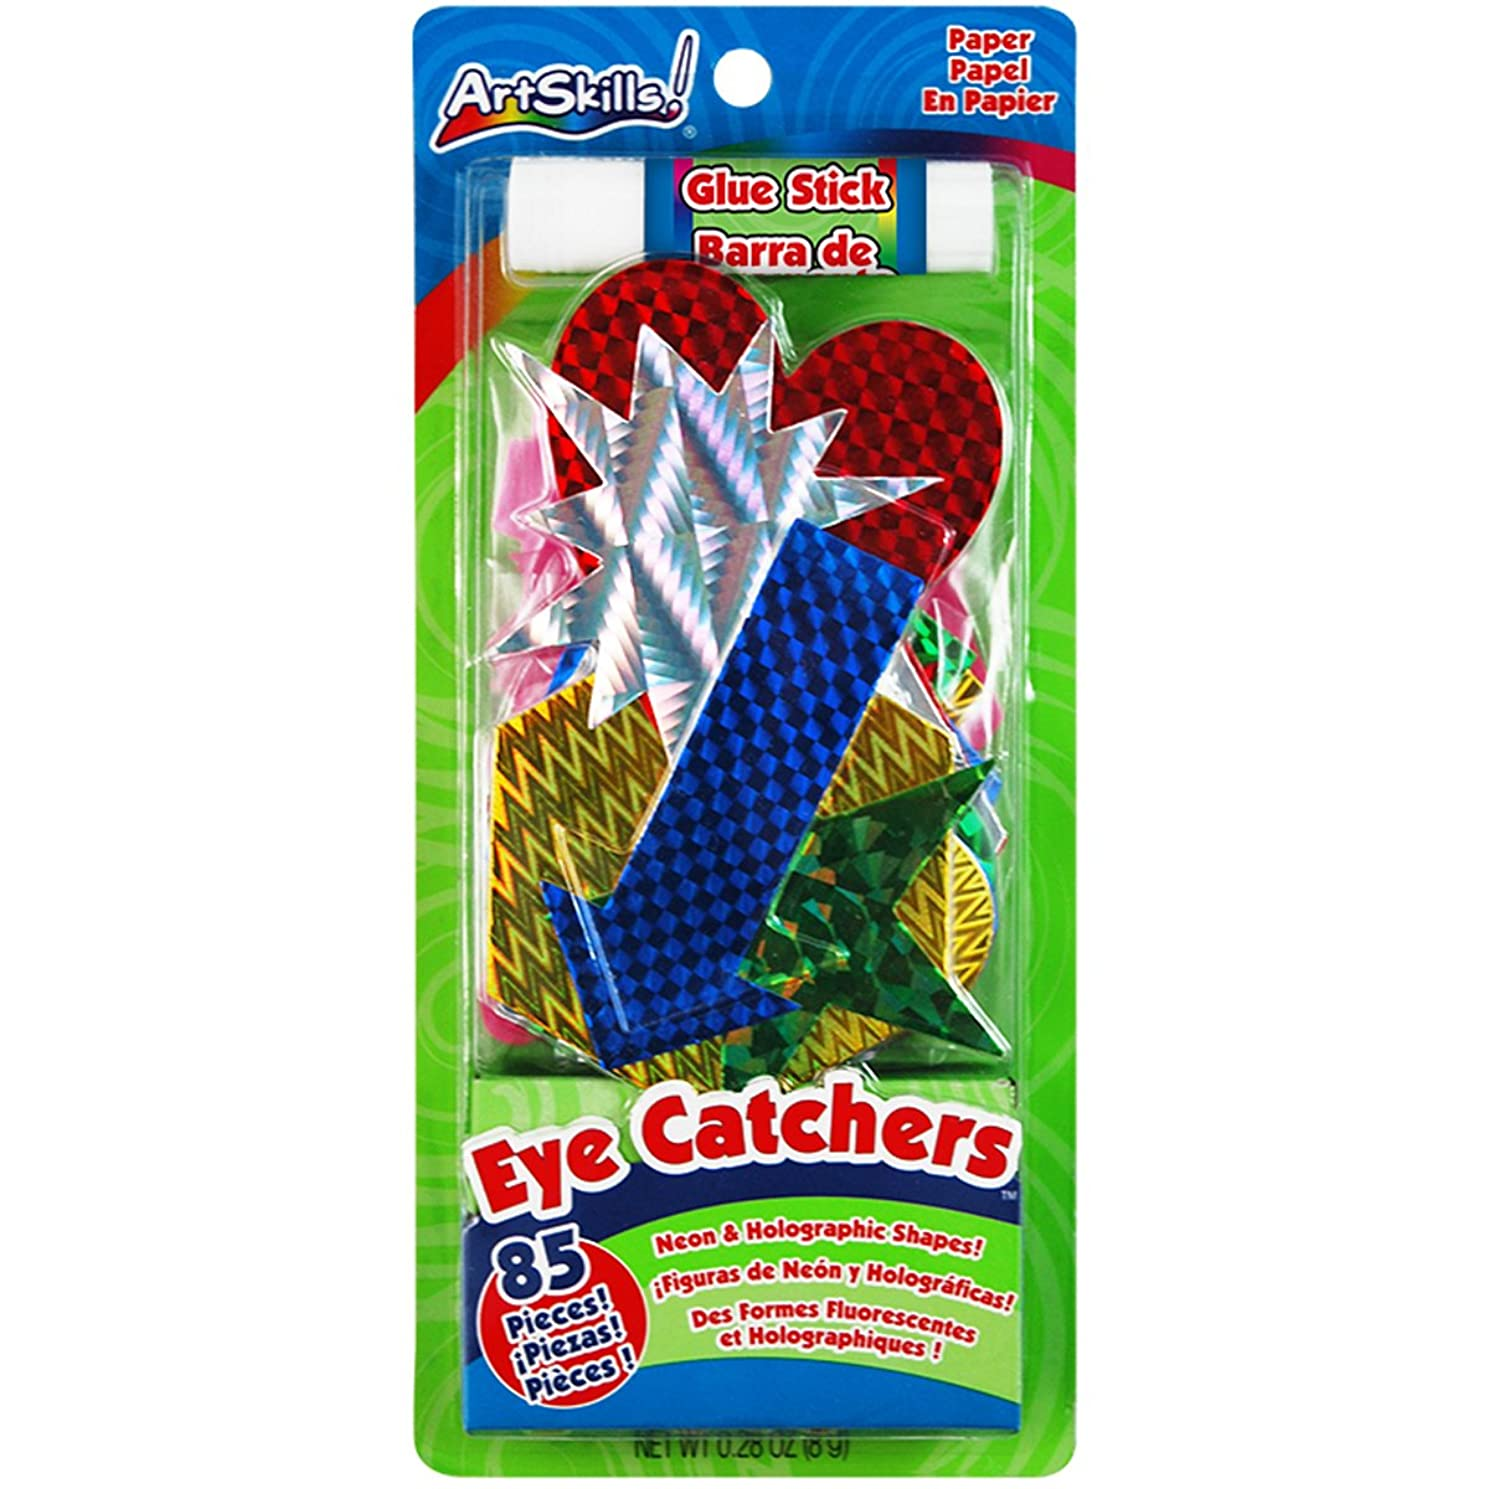 ArtSkills Eye Catchers Poster Shapes, Arts and Crafts Supplies, Neon and Holographic, Assorted Colors, 85 Pieces, Includes 1 Glue Stick (PA-1218)